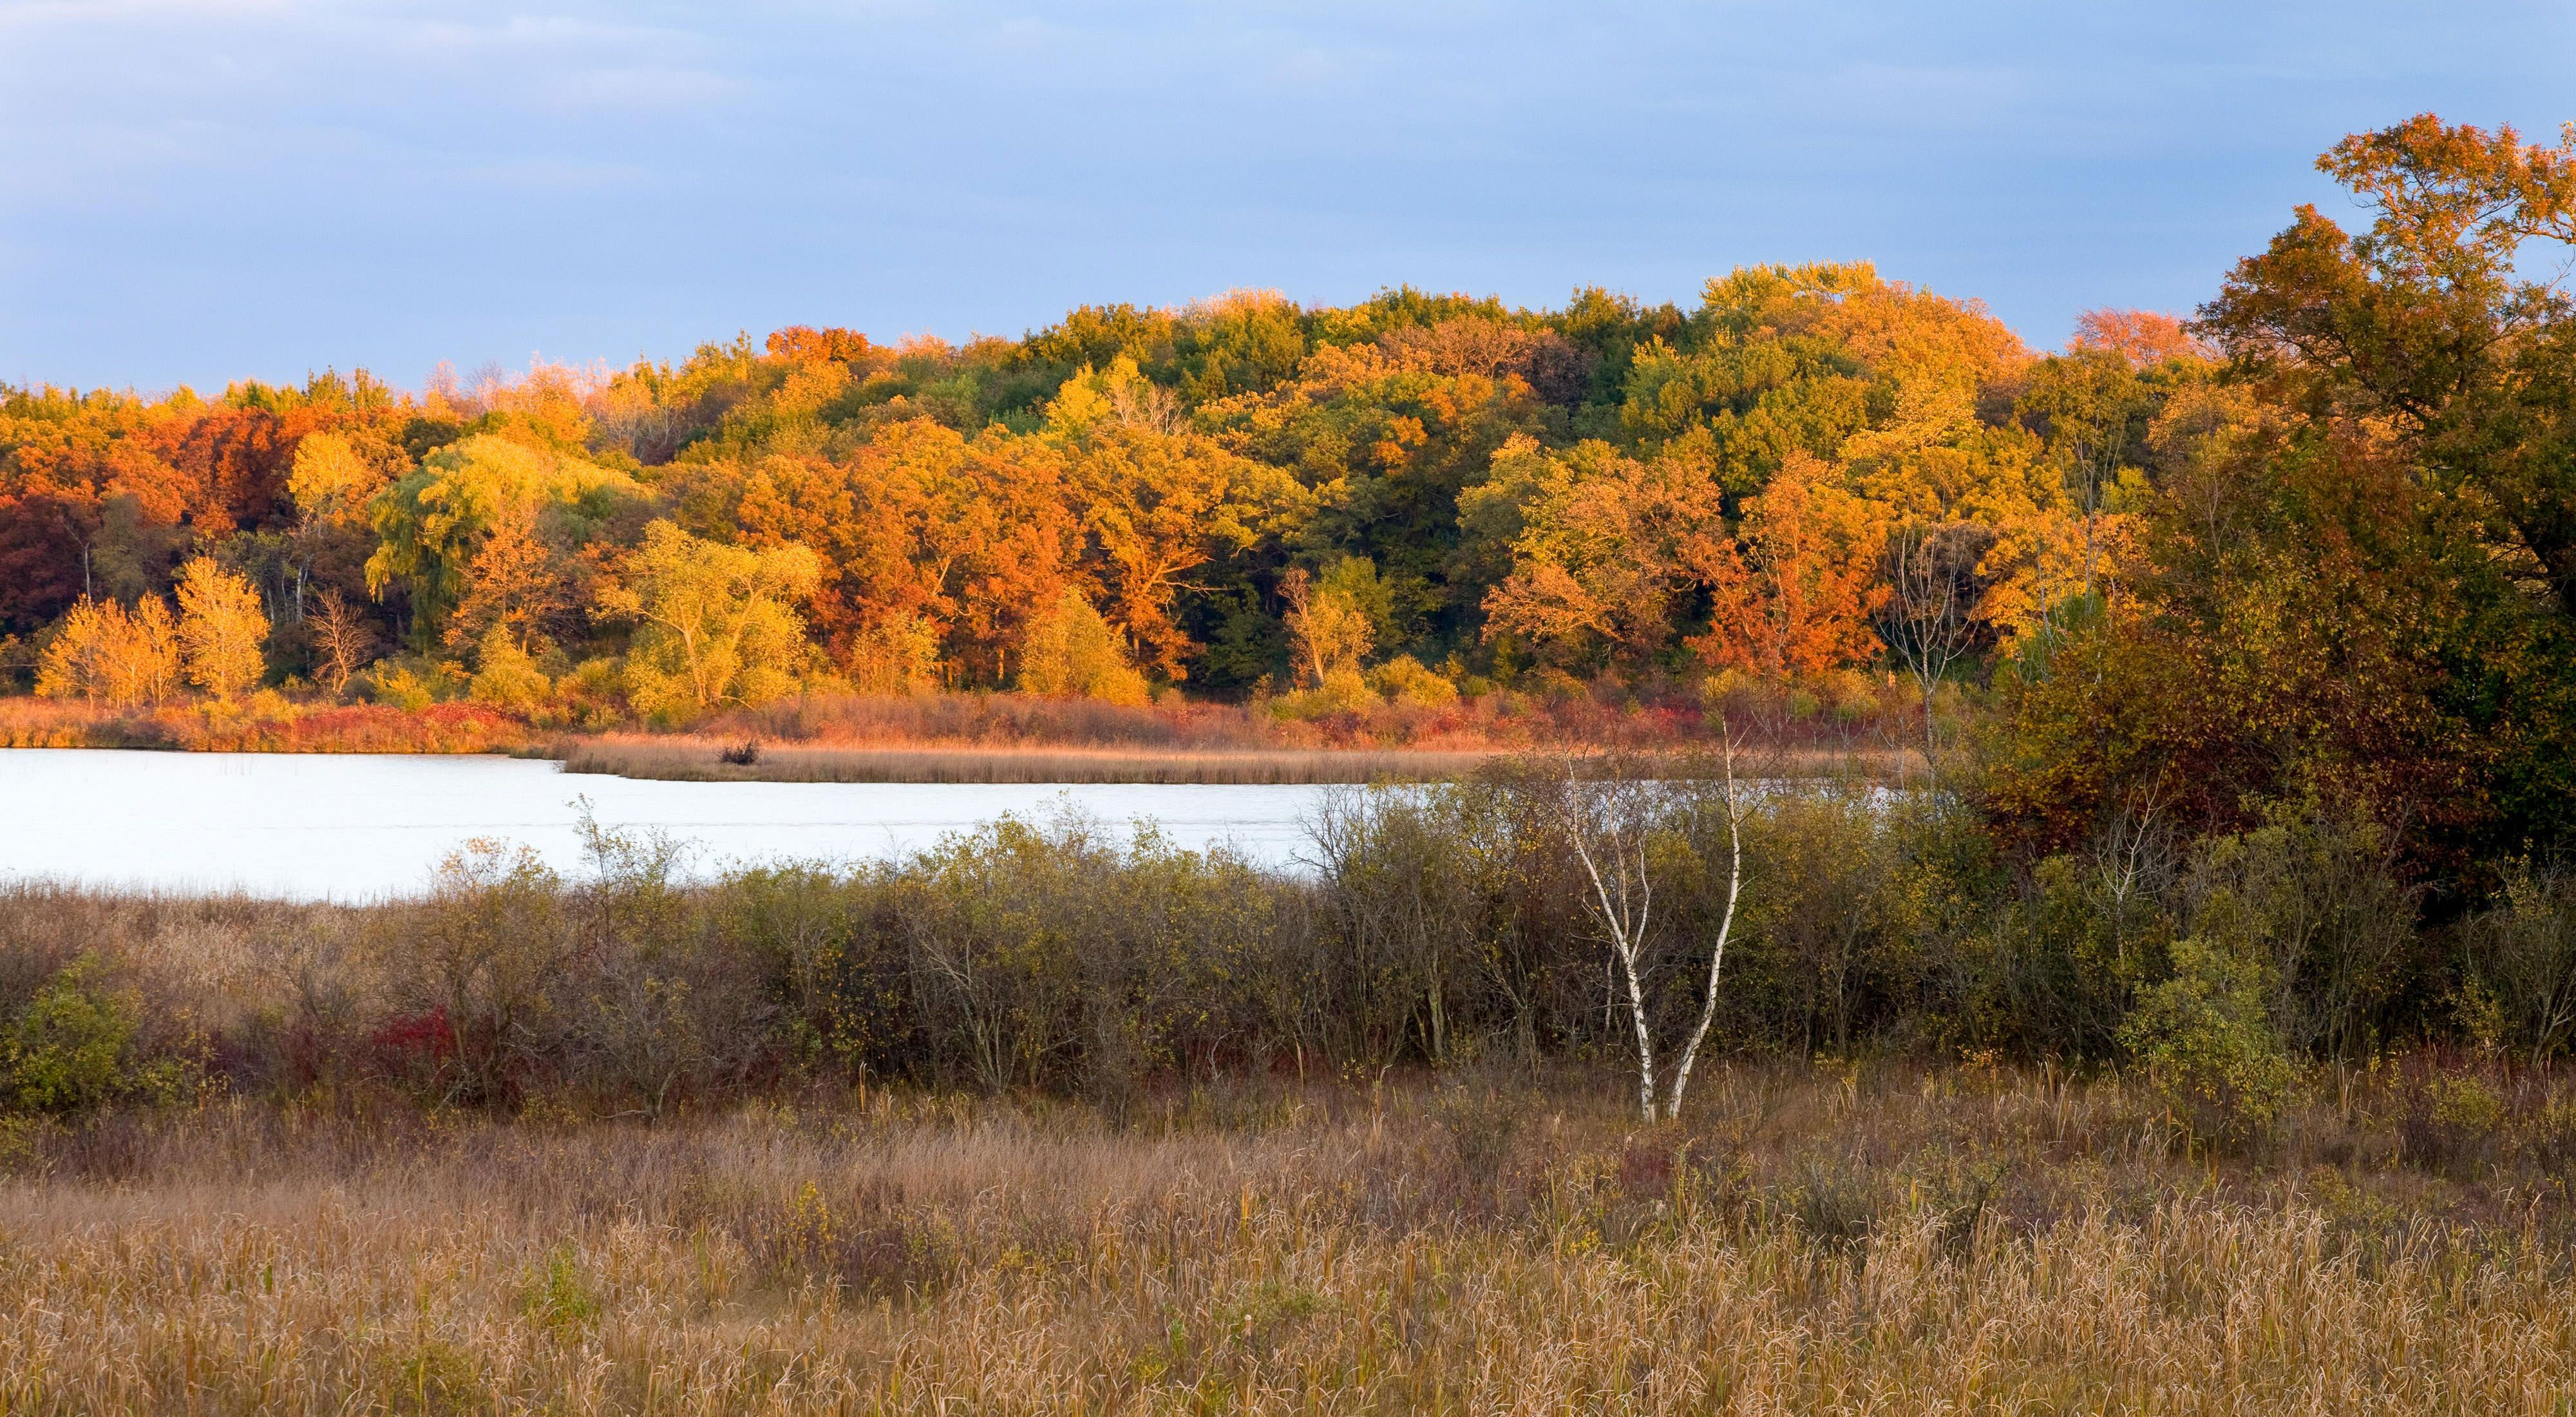 Sun lights up the fall colors in the forest with a small lake surrounded by wetlands in the foreground